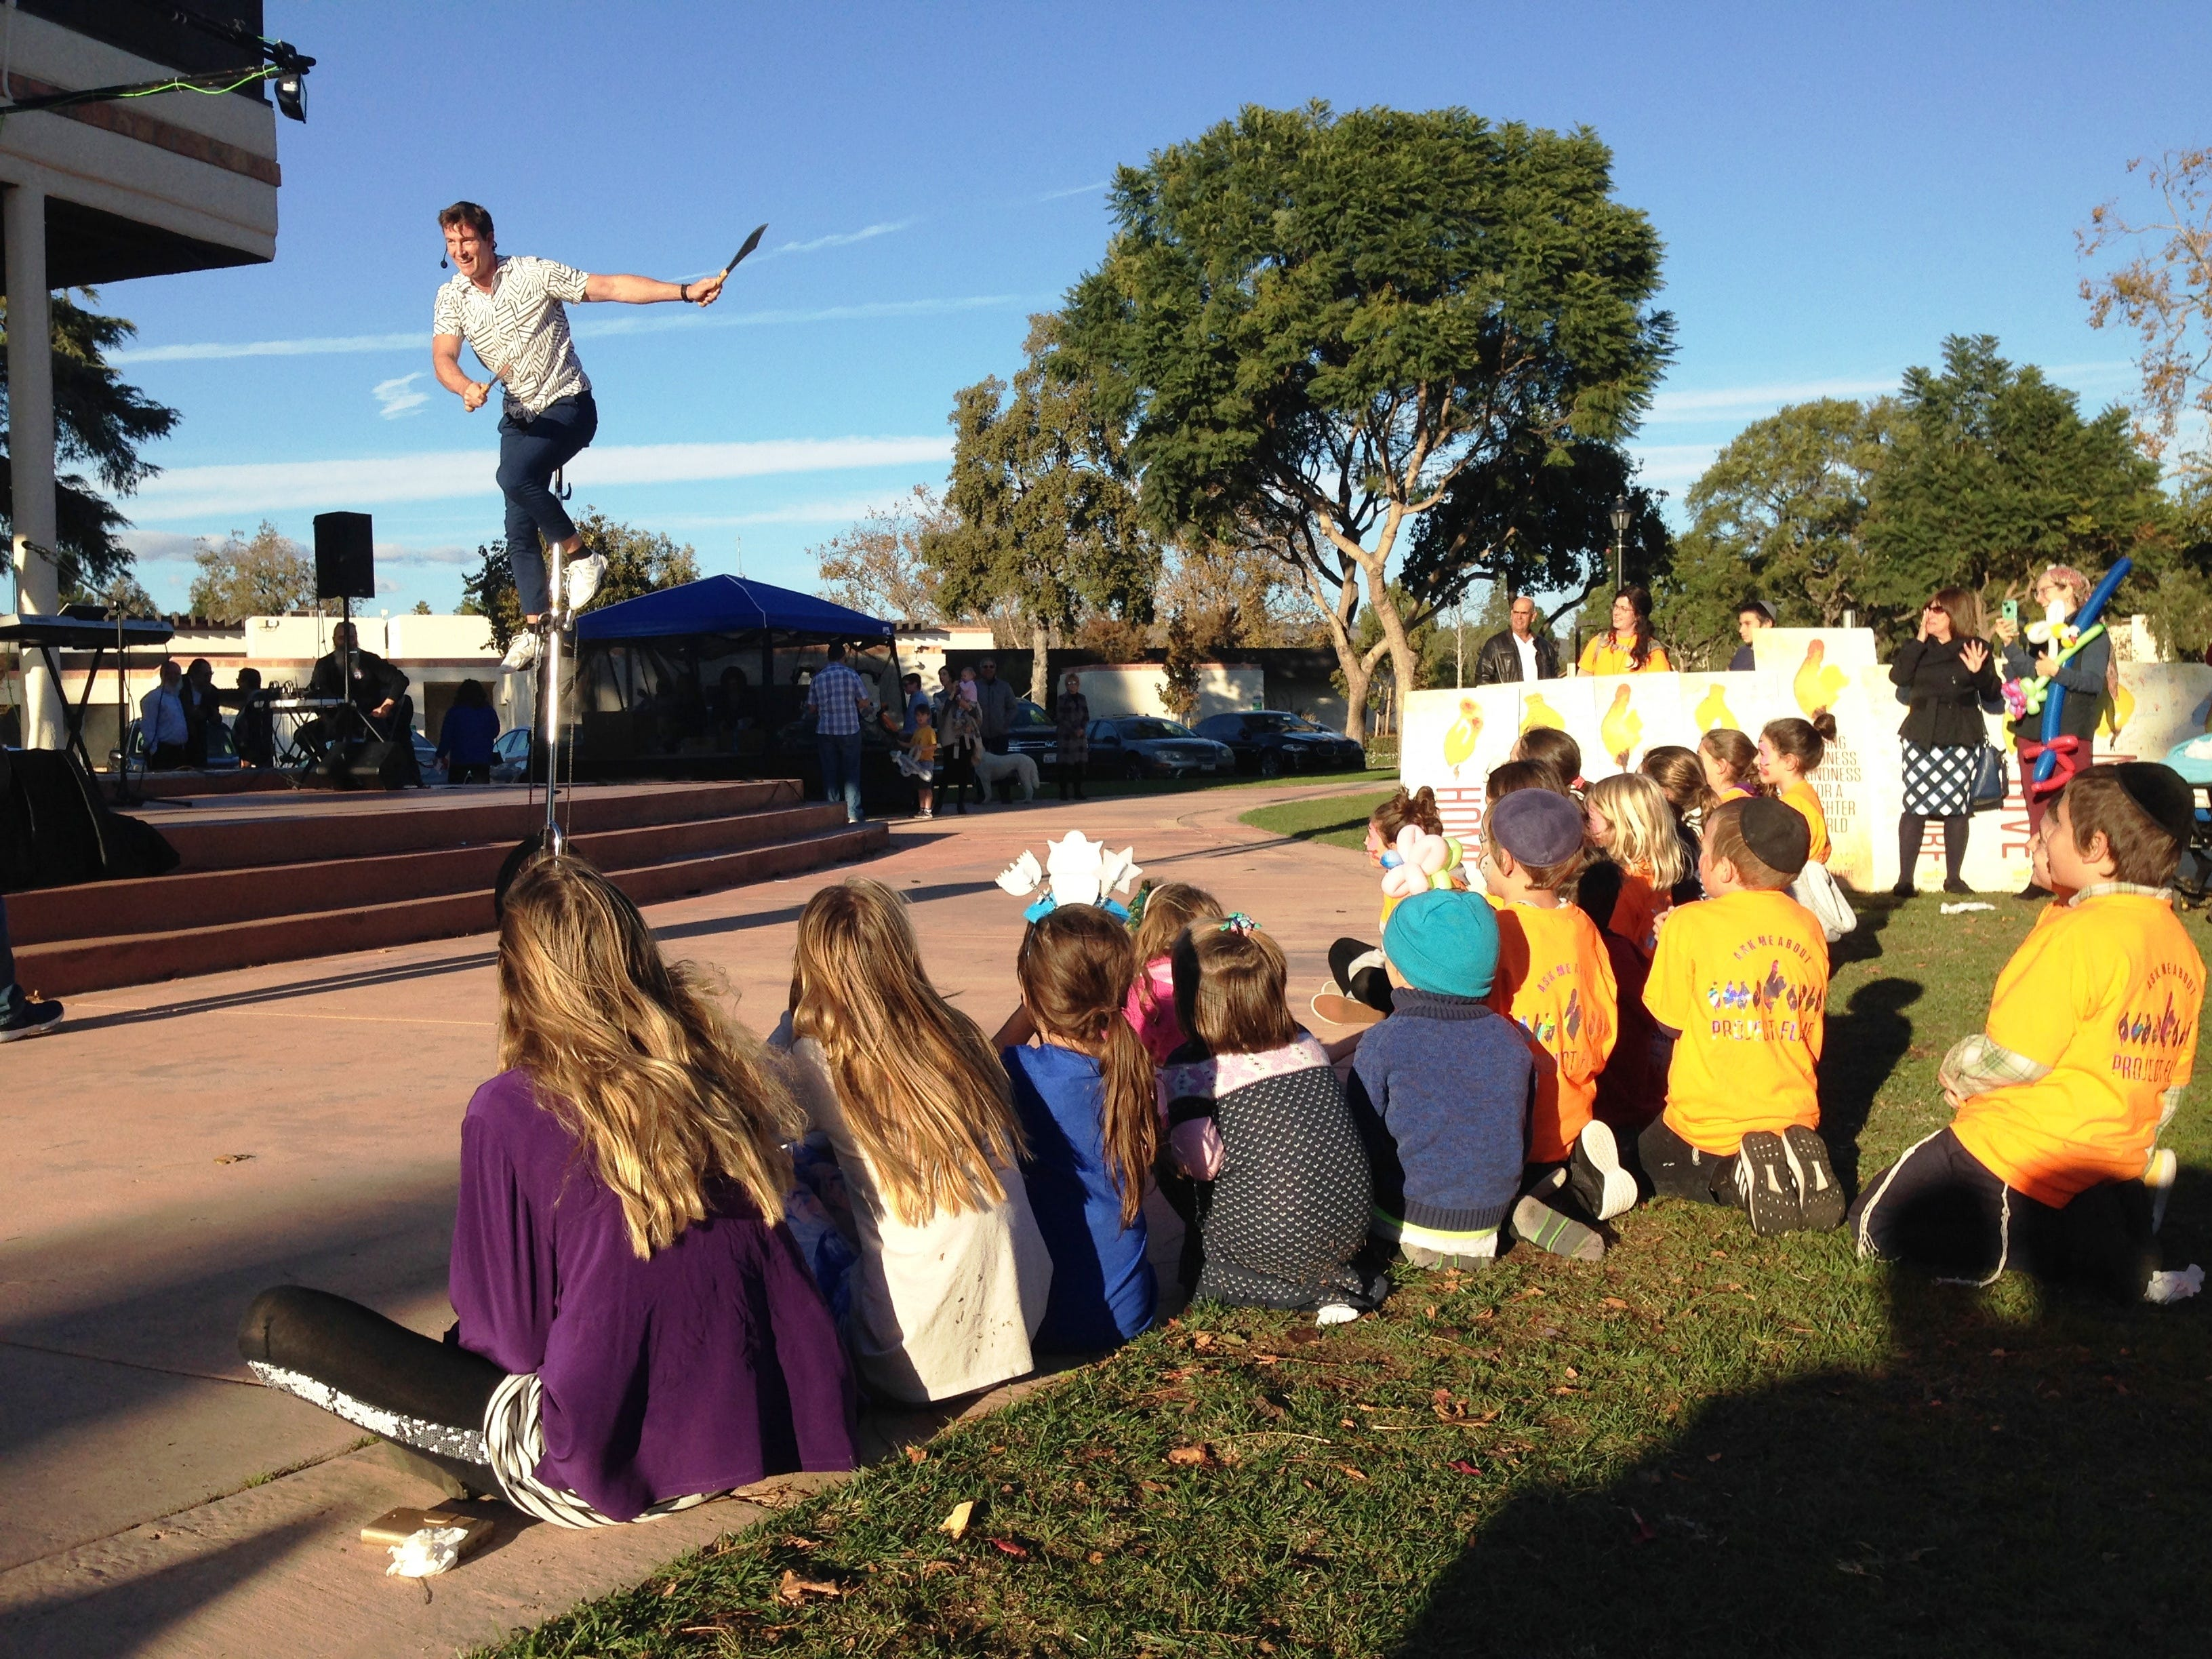 Patrick Connor, a juggler and comedian who lives in Marina Del Rey, performs for children on Sunday at Chabad of Camarillo's 16th annual Hanukkah Festival and Grand Menorah Lighting in Constitution Park in Camarillo.